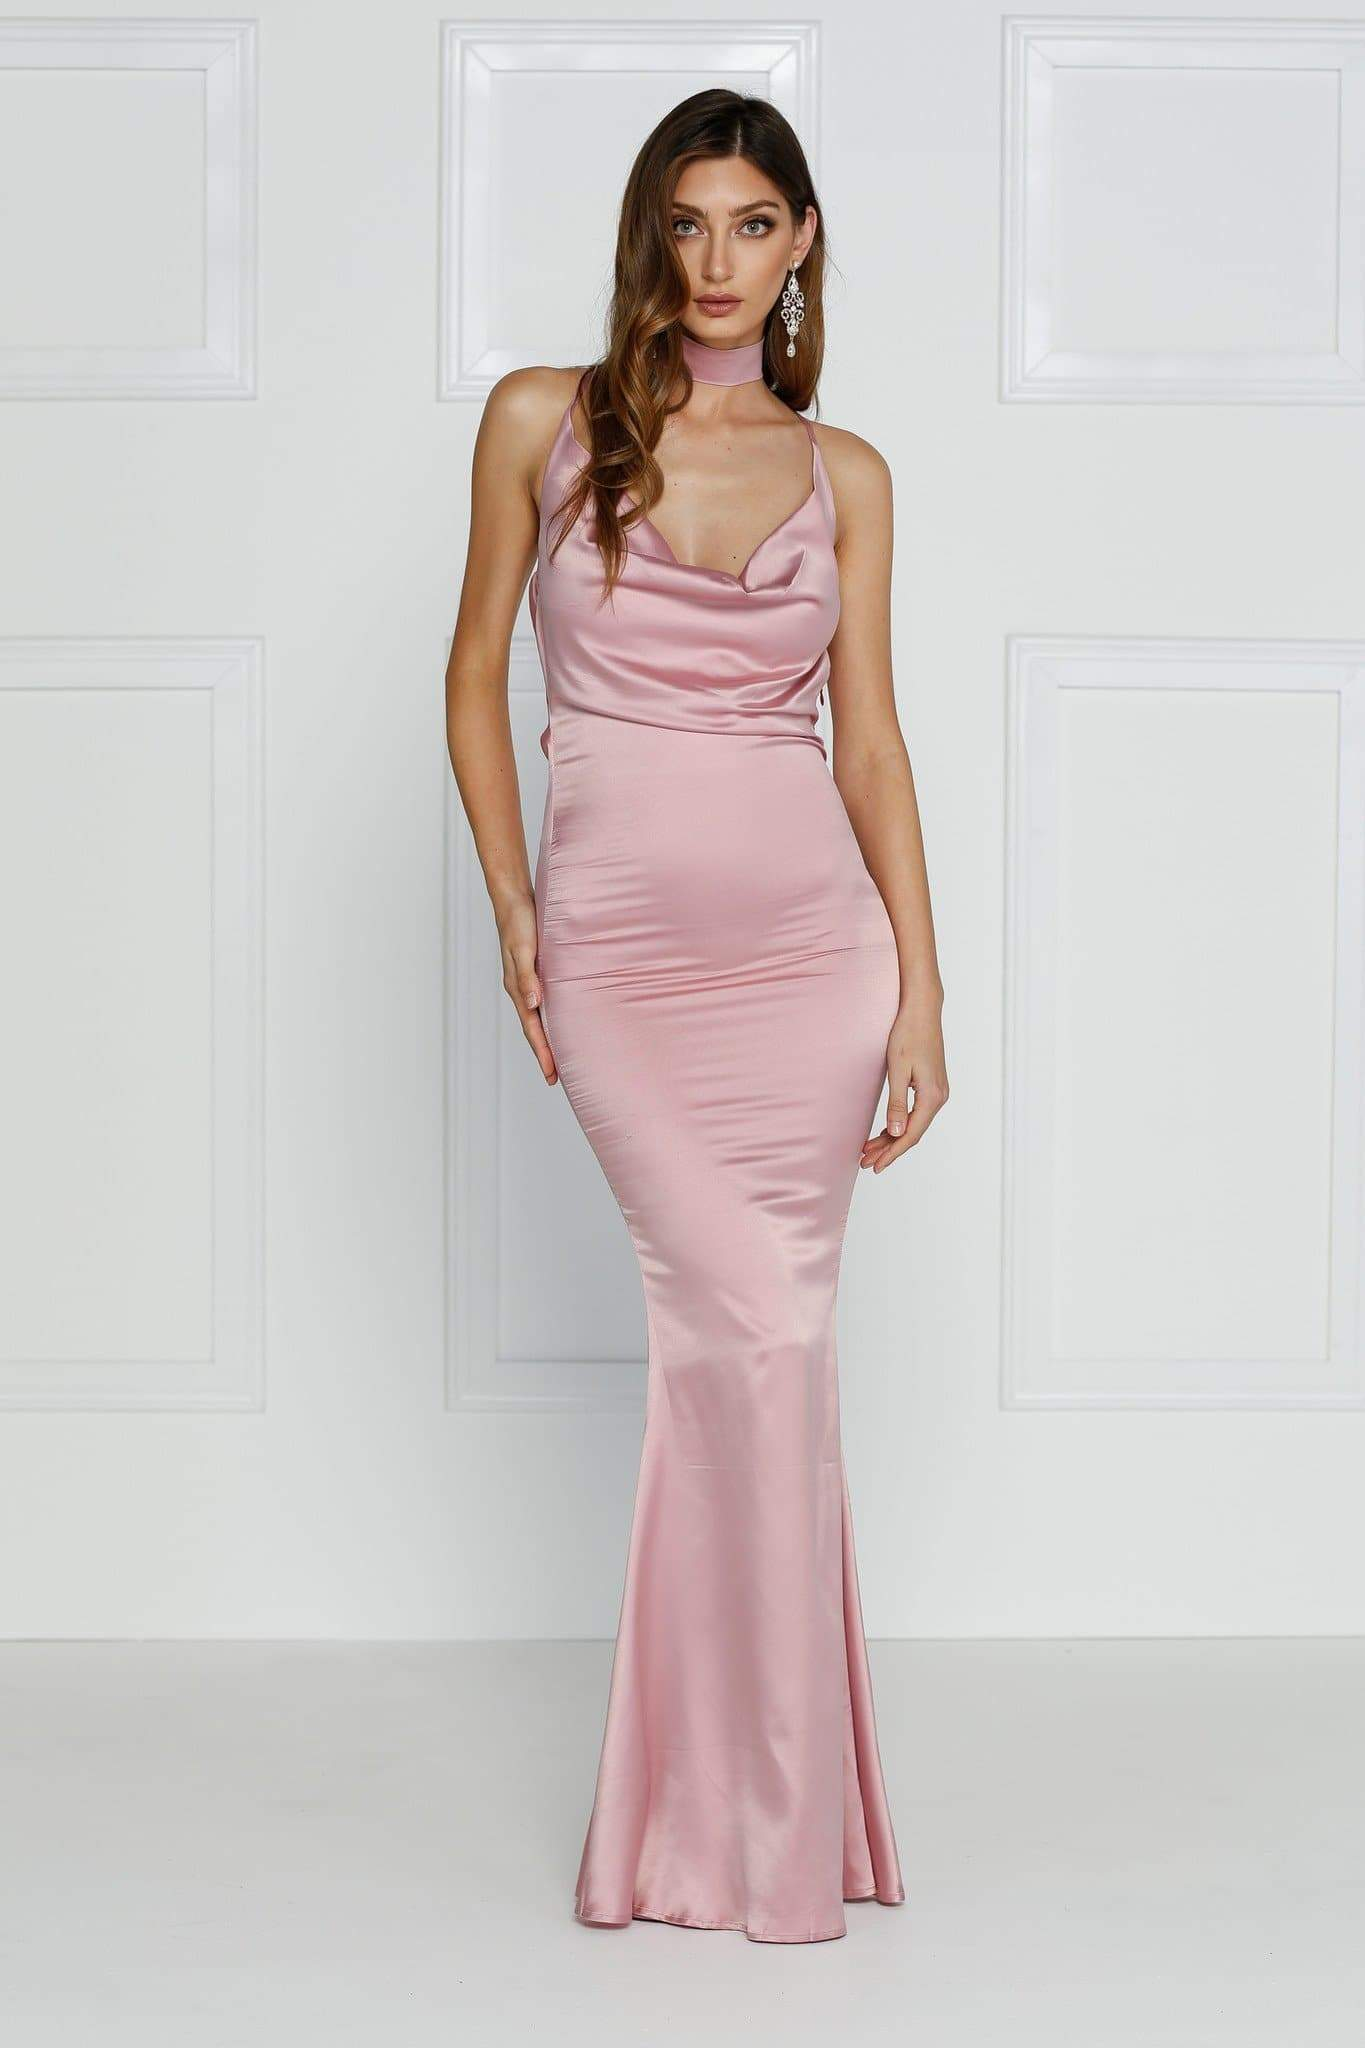 Crisantemi Gown - Dusty Pink Satin Cowl Neck Low Back Mermaid Dress